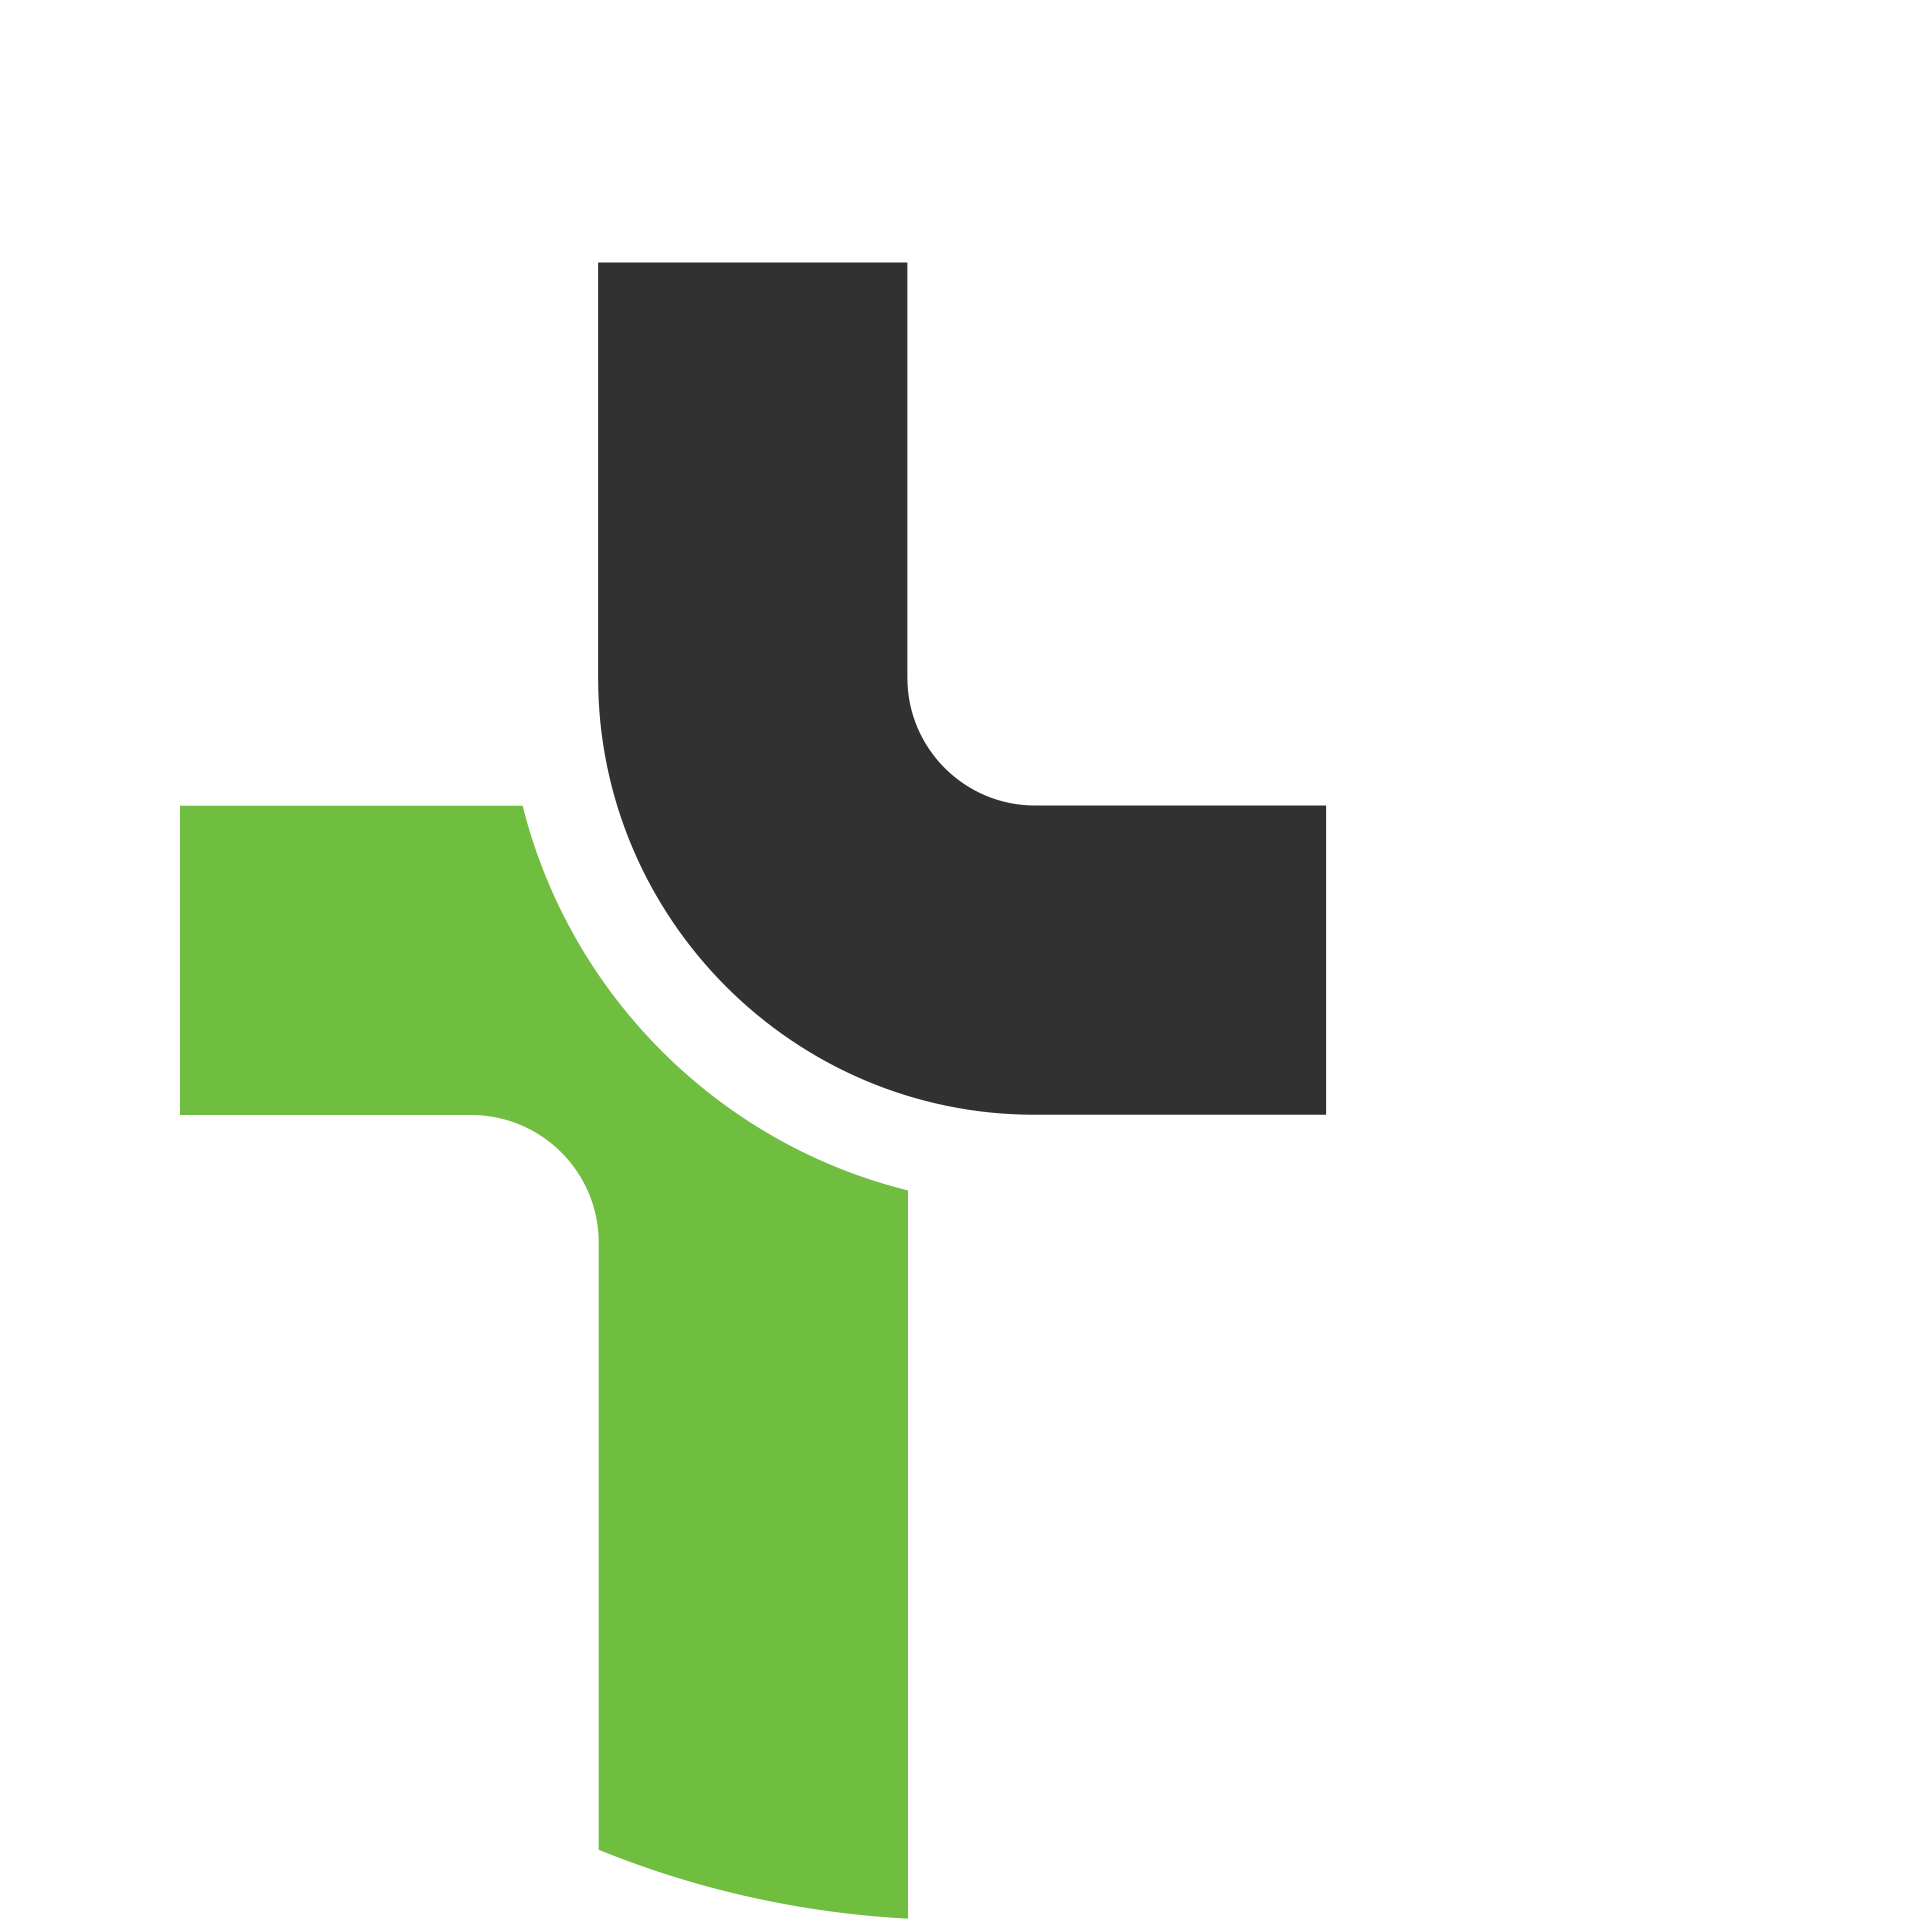 graphic symbol inverted large.png